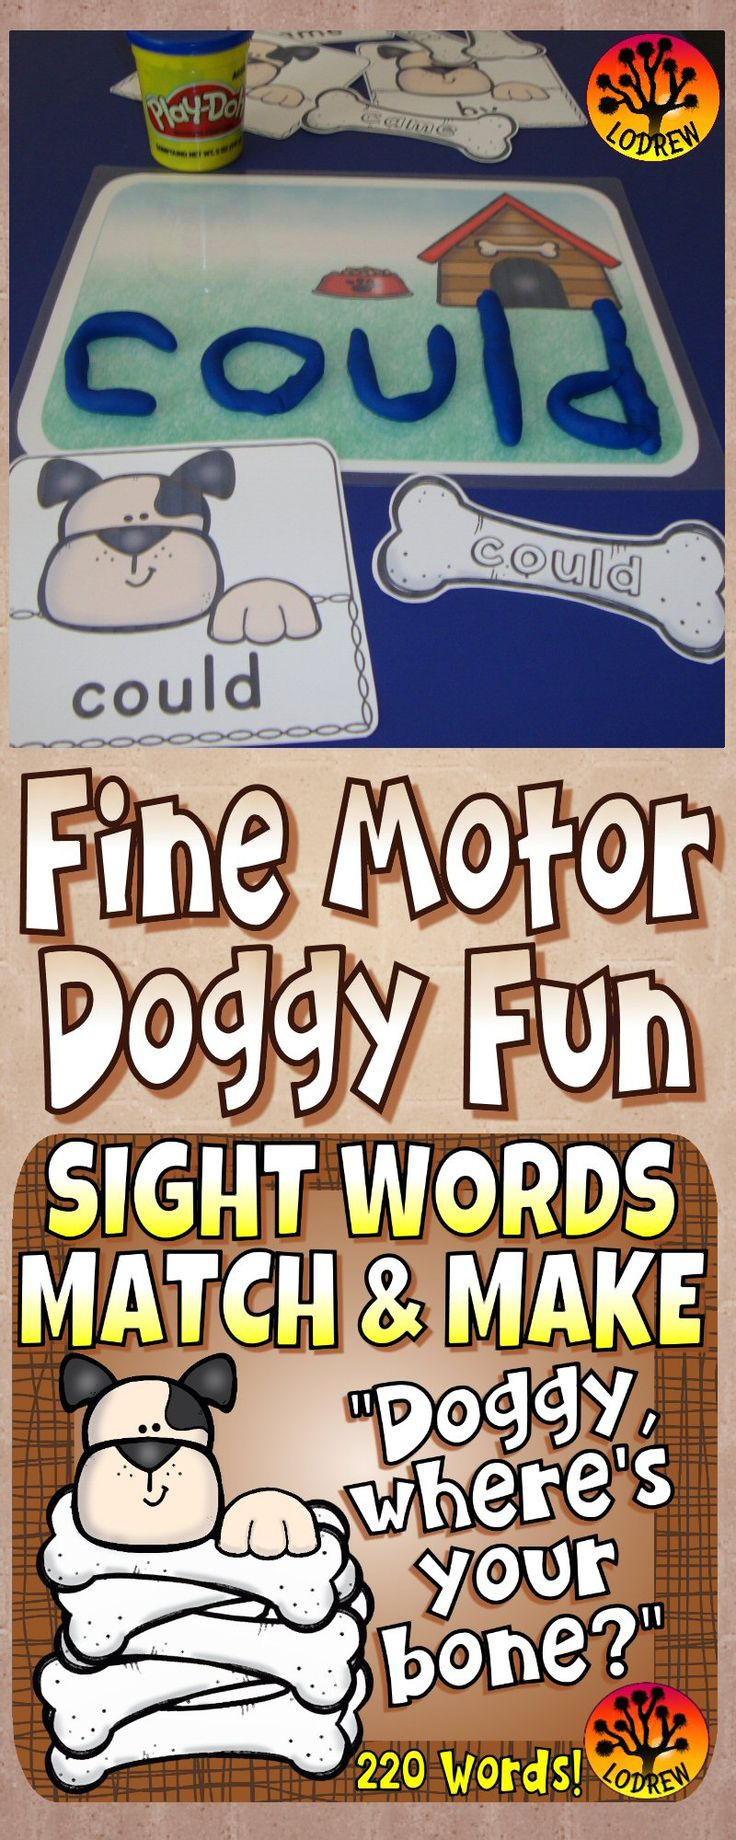 111 pages of sight word centers featuring all 220 Dolch sight words. Activities include sight word recognition, spelling, fine motor, sight word activities, pet centers, playdough mats, reading strategies, visual discrimination, letter matching, and more. For kindergarten, preschool, first grade, primary, SPED, child care, homeschool, or any early childhood setting.